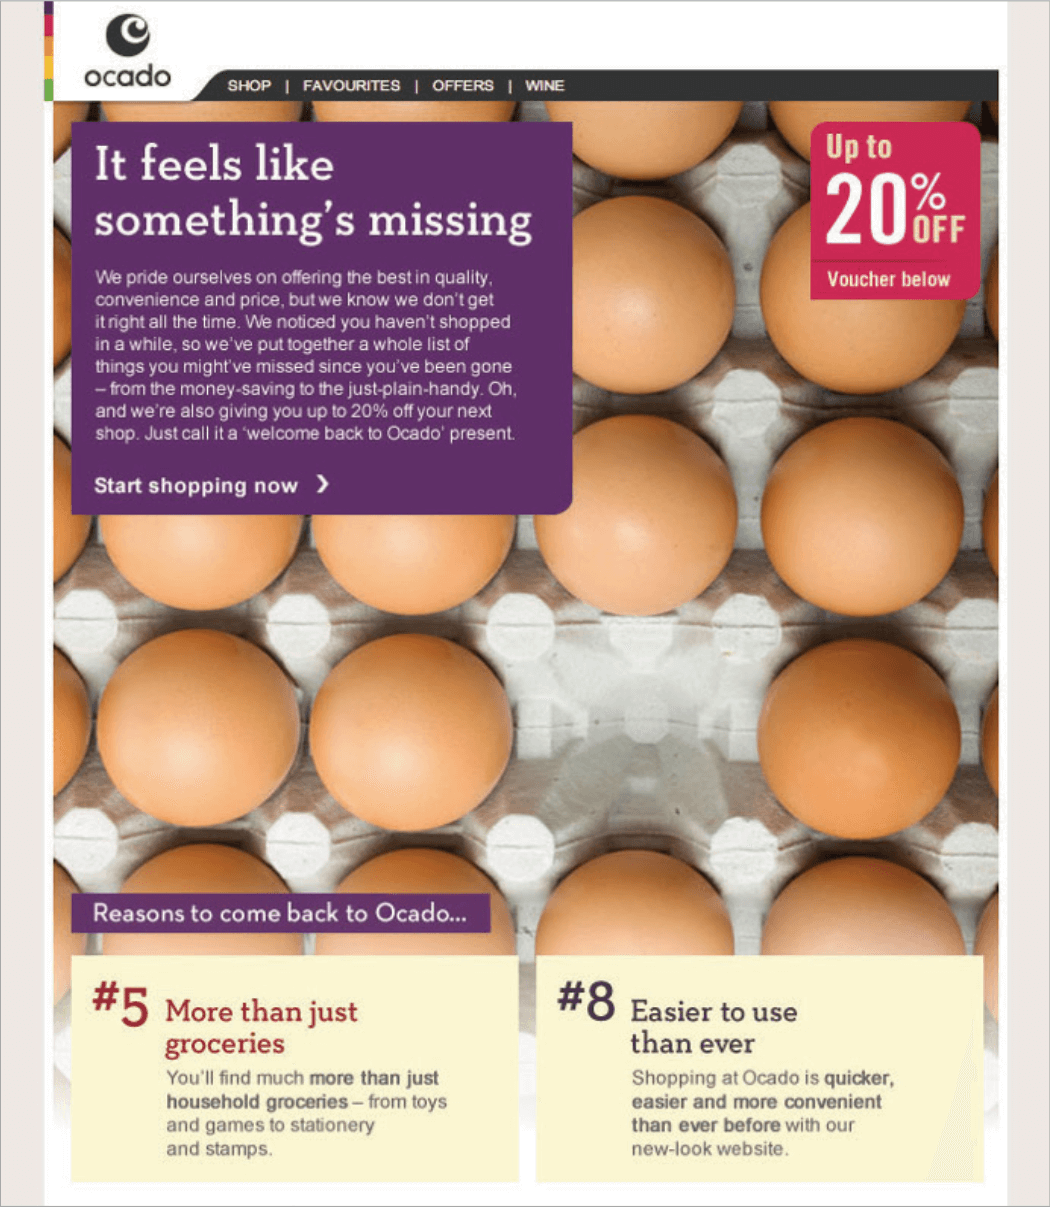 Picture 19 – Ocado: It feels like something's missing... A very creative design from the British Internet retailer, with a strong argument on why to re-engage with the communication, along with a voucher worth up to 20% off the next purchase.